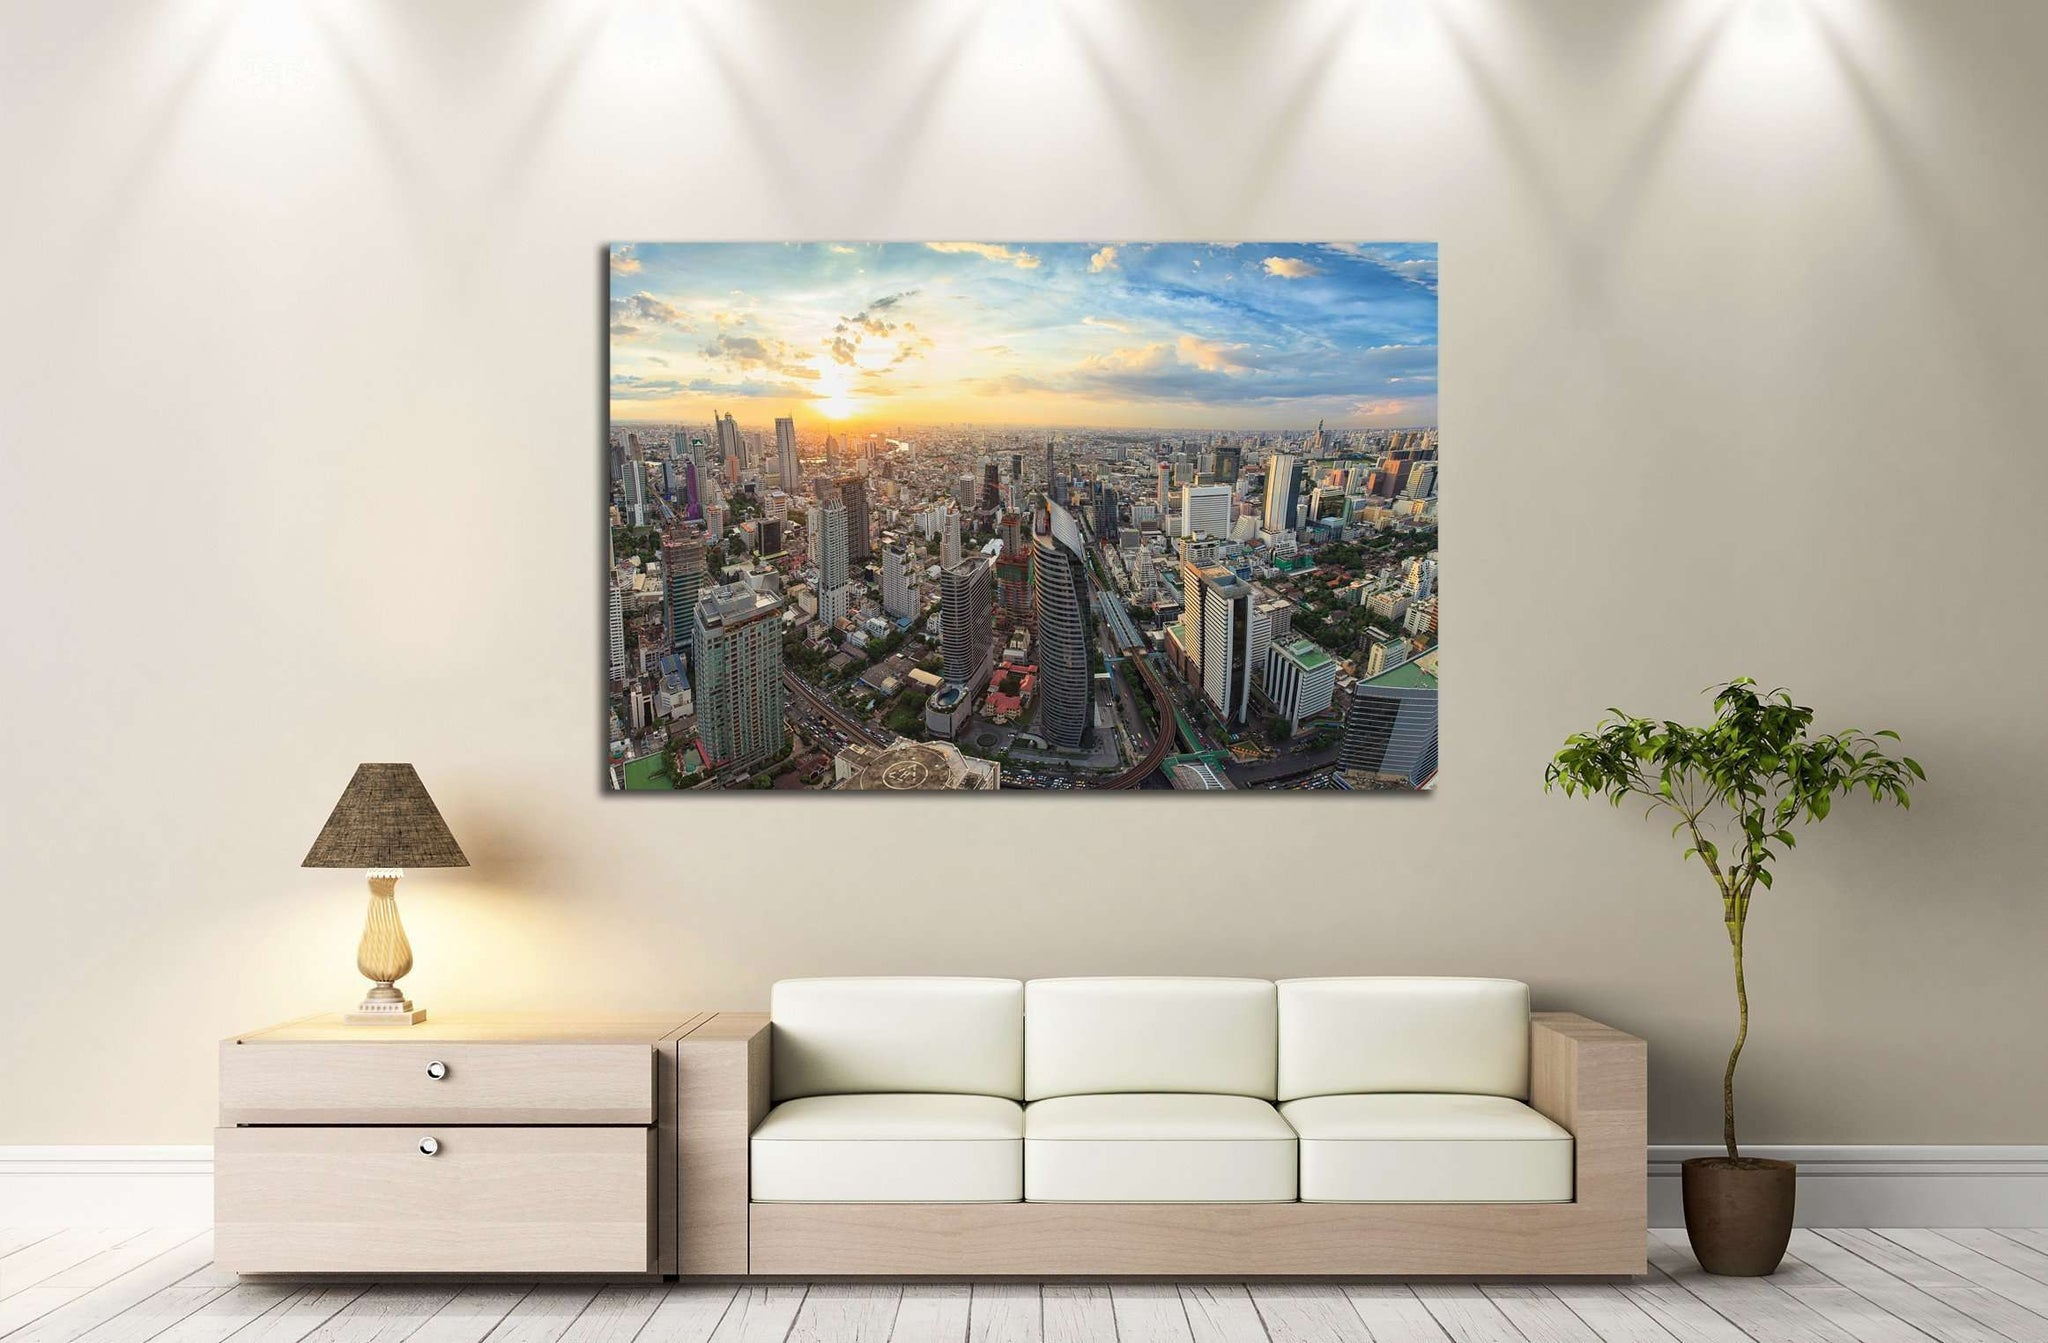 Bangkok panorama, cityscape sunset view №2292 Ready to Hang Canvas Print